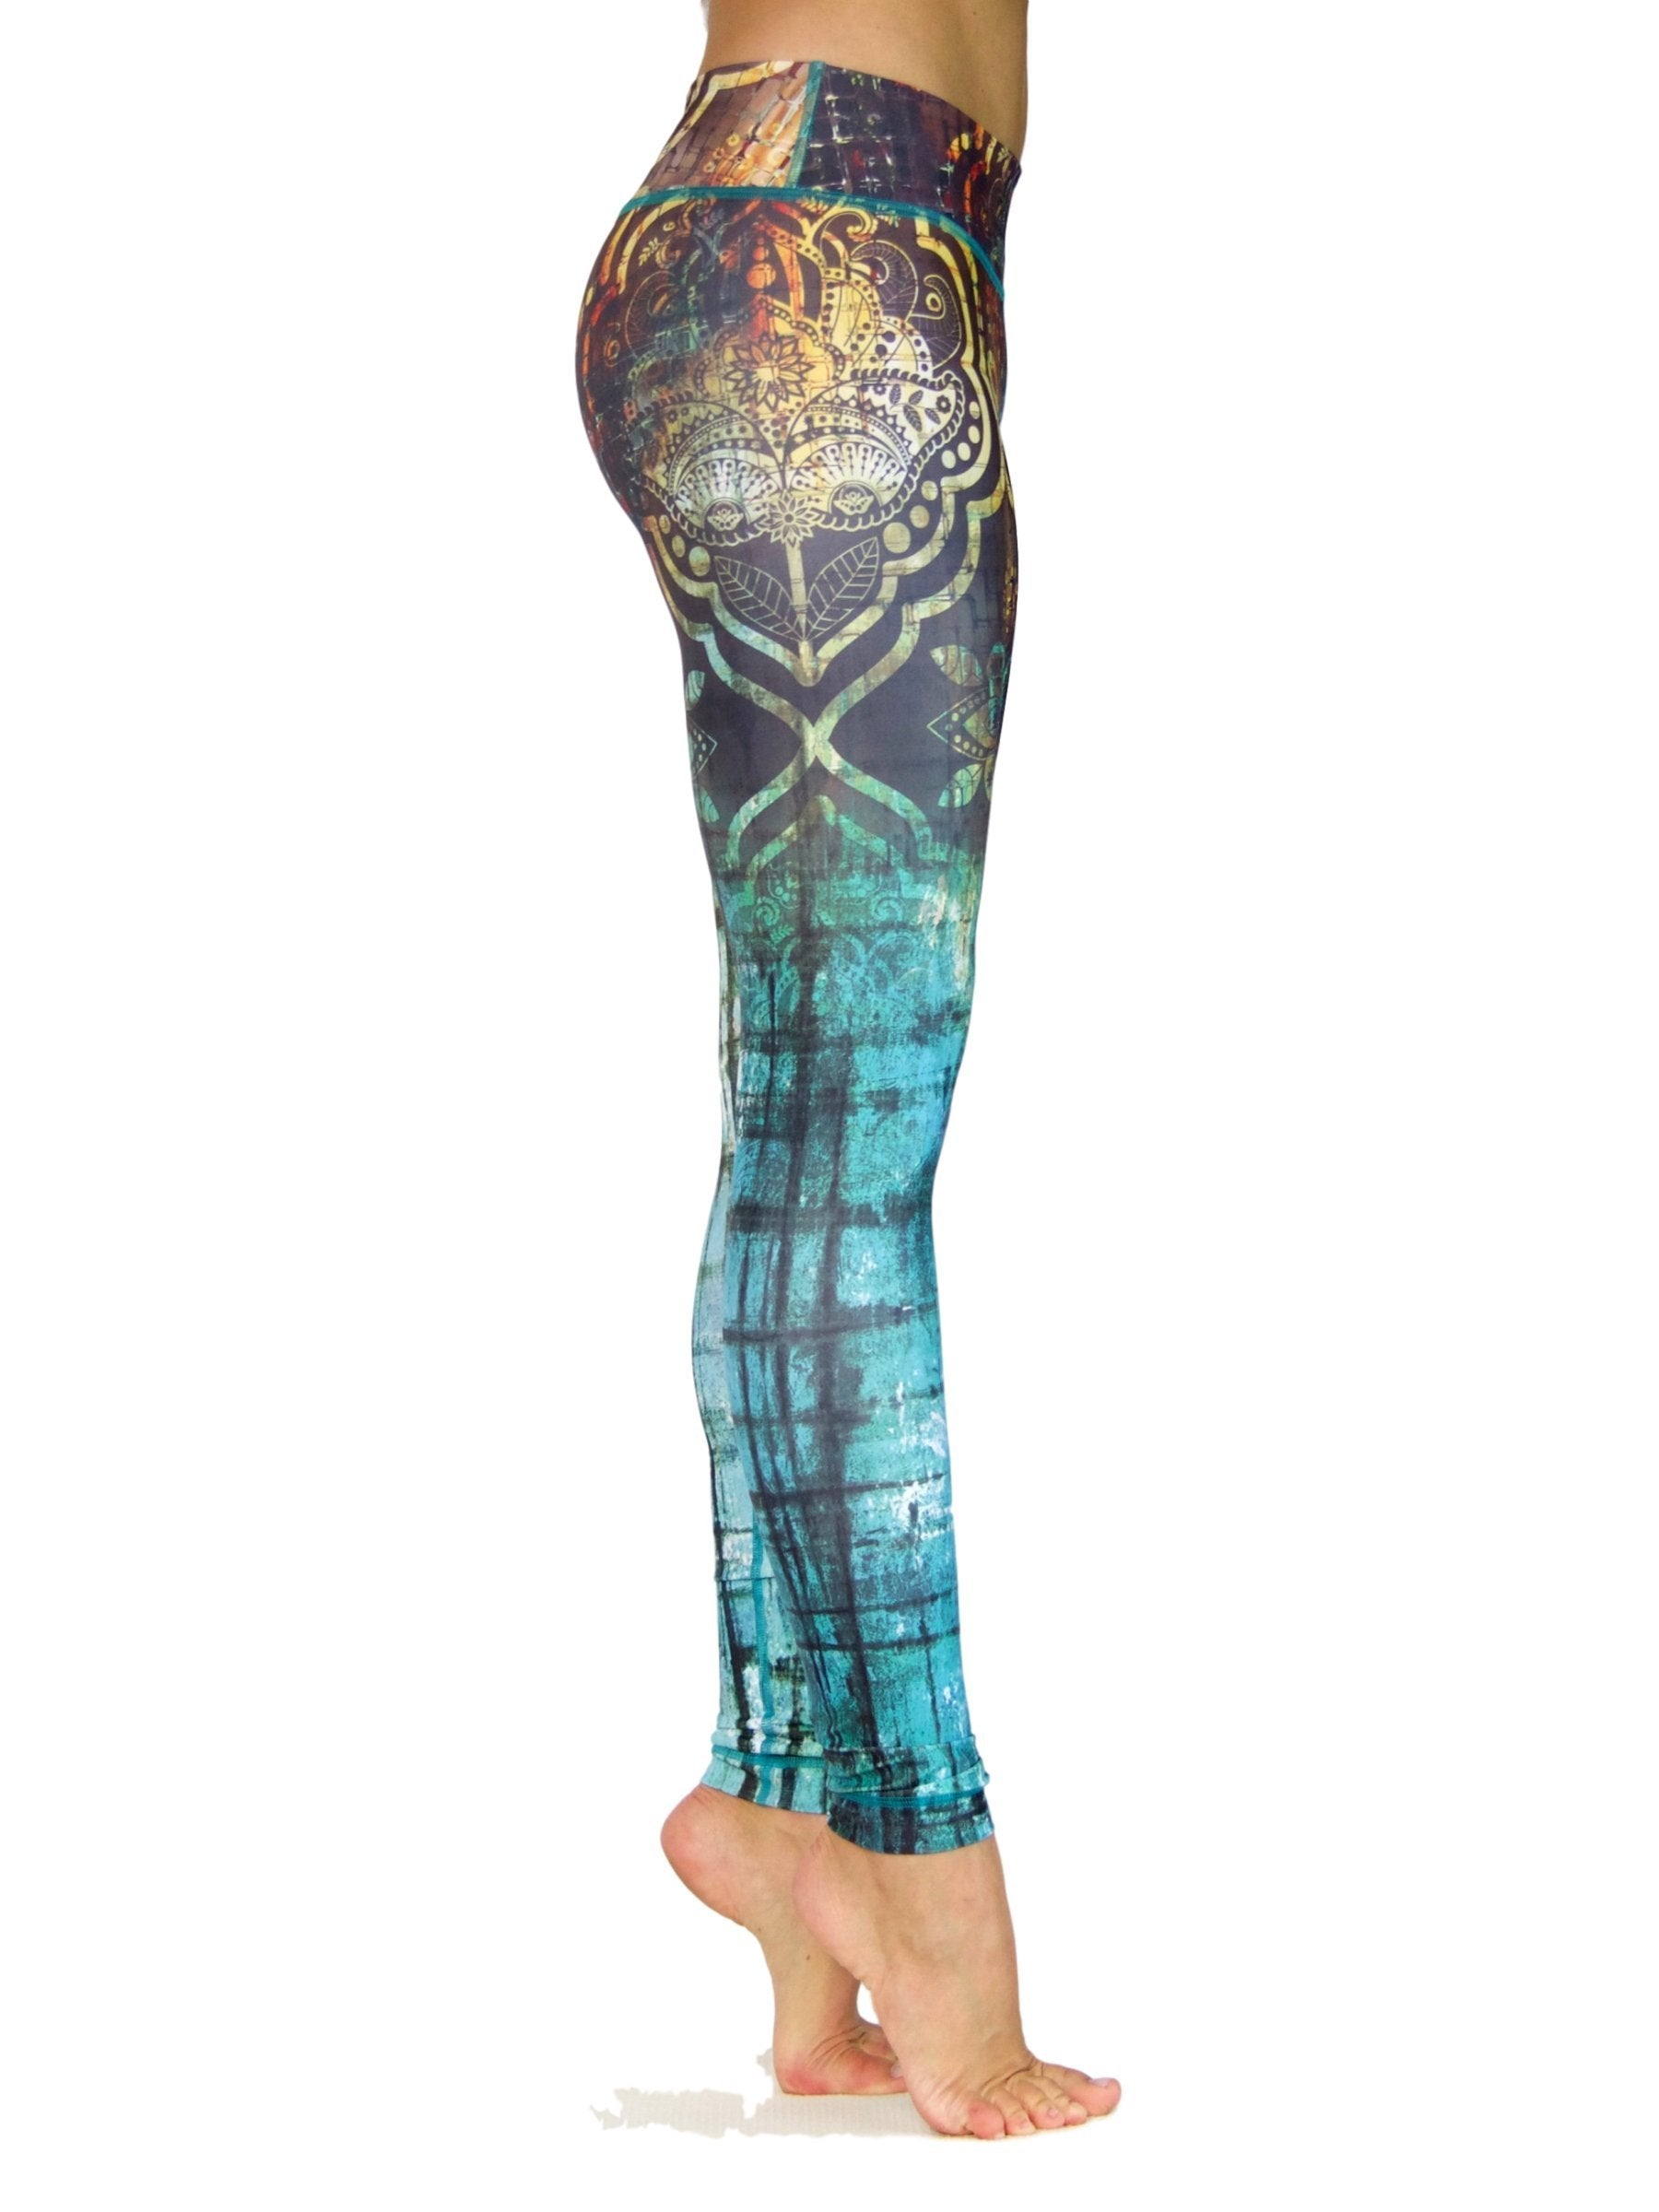 Calypso by Niyama - High Quality, , Yoga Legging for Movement Artists.